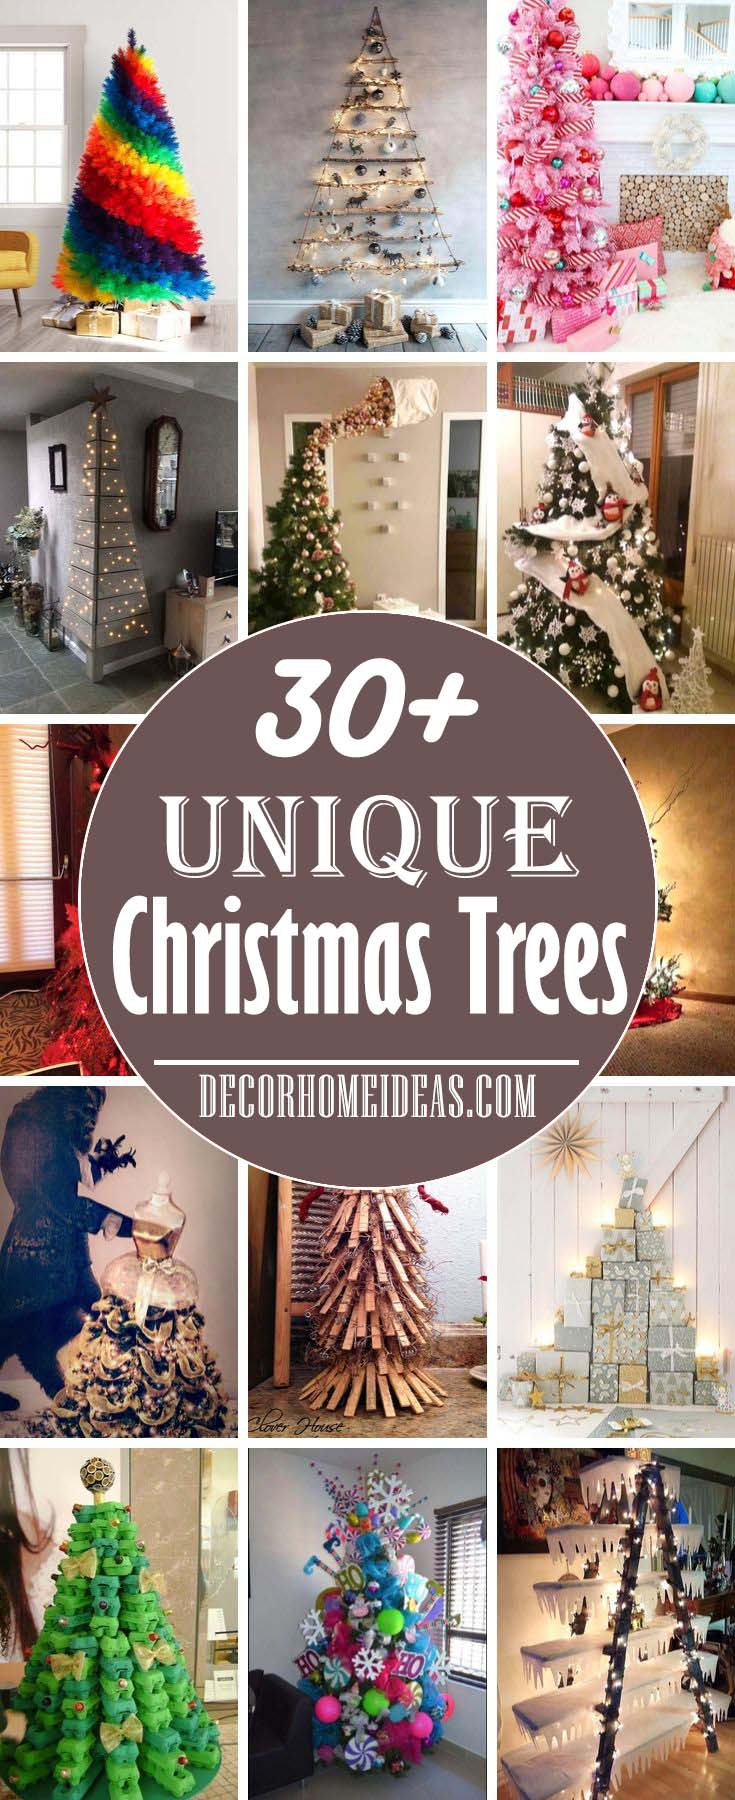 Most Unique Christmas Trees, Unusual and extraordinary Christmas trees #Christmas #trees #decorhomeideas